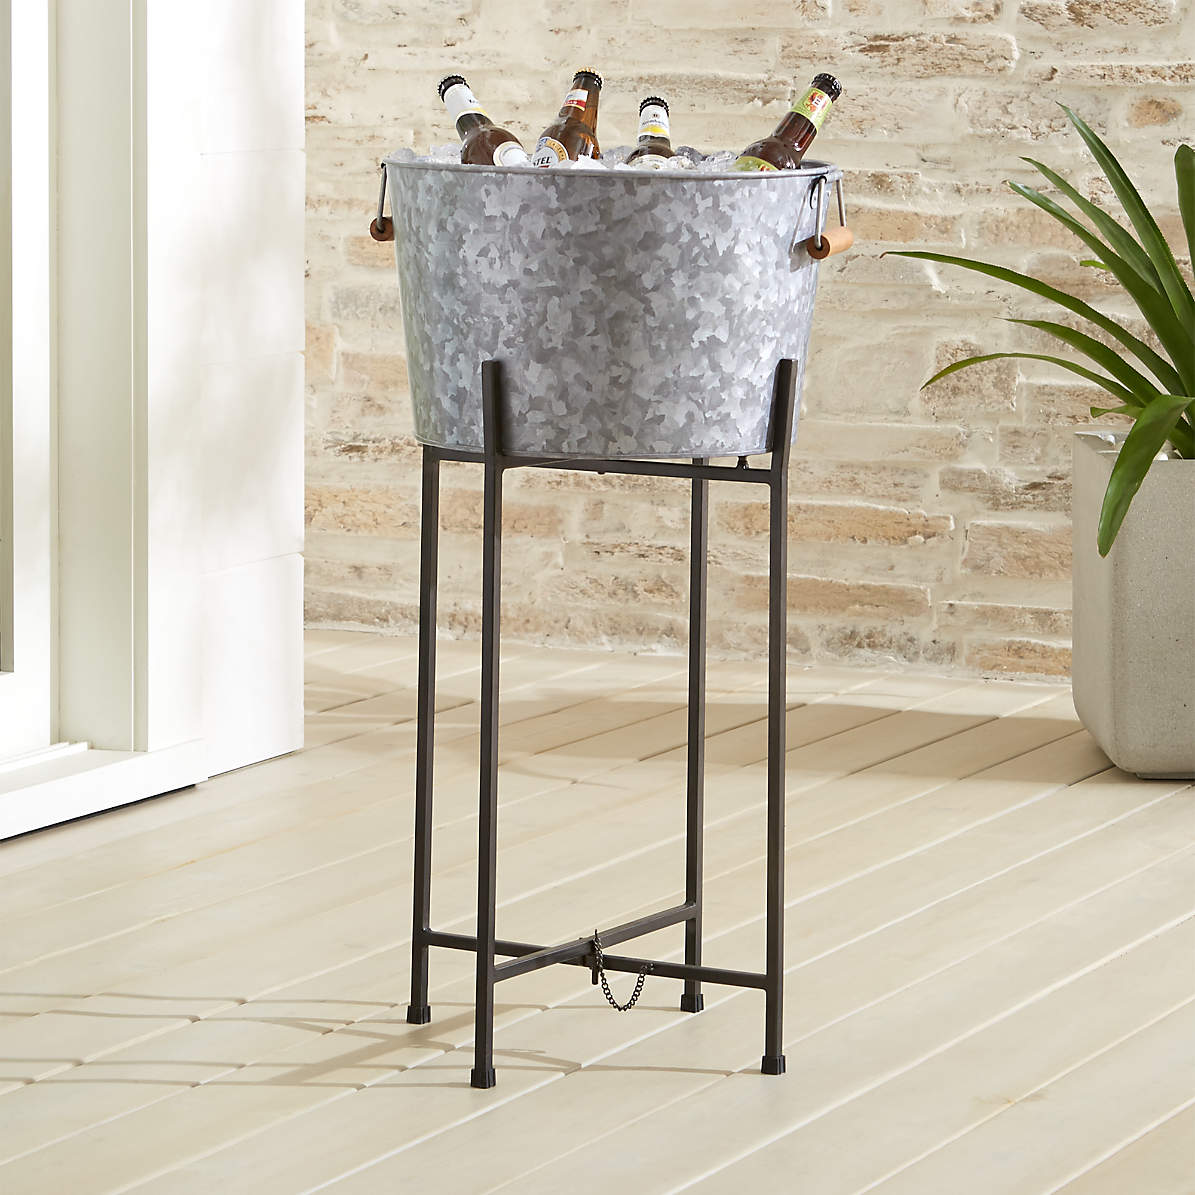 Galvanized Beverage Tub With Black Stand Reviews Crate And Barrel